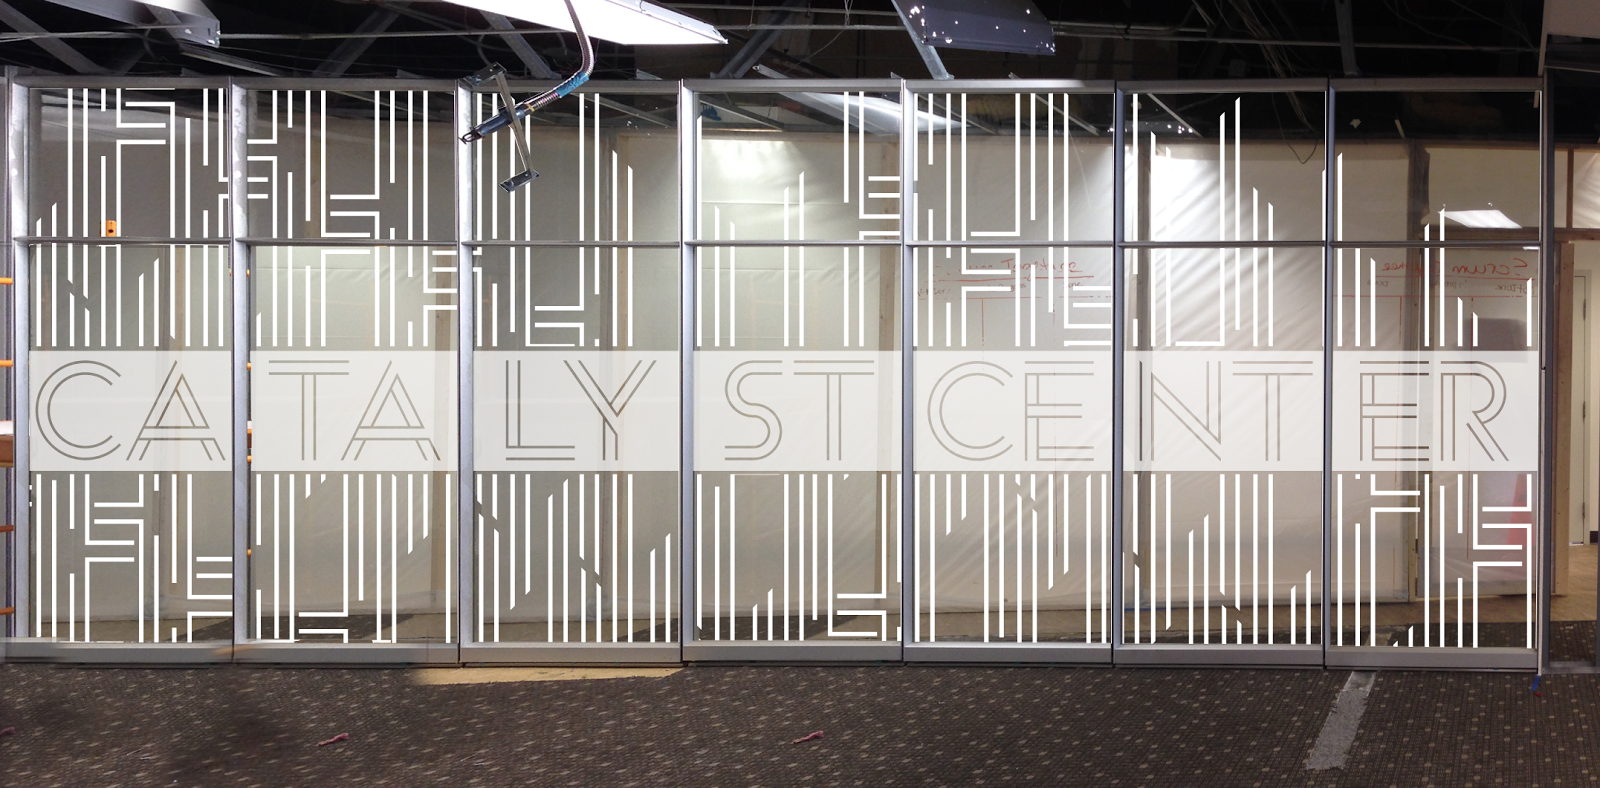 Catalyst center bison branding for Window panel design